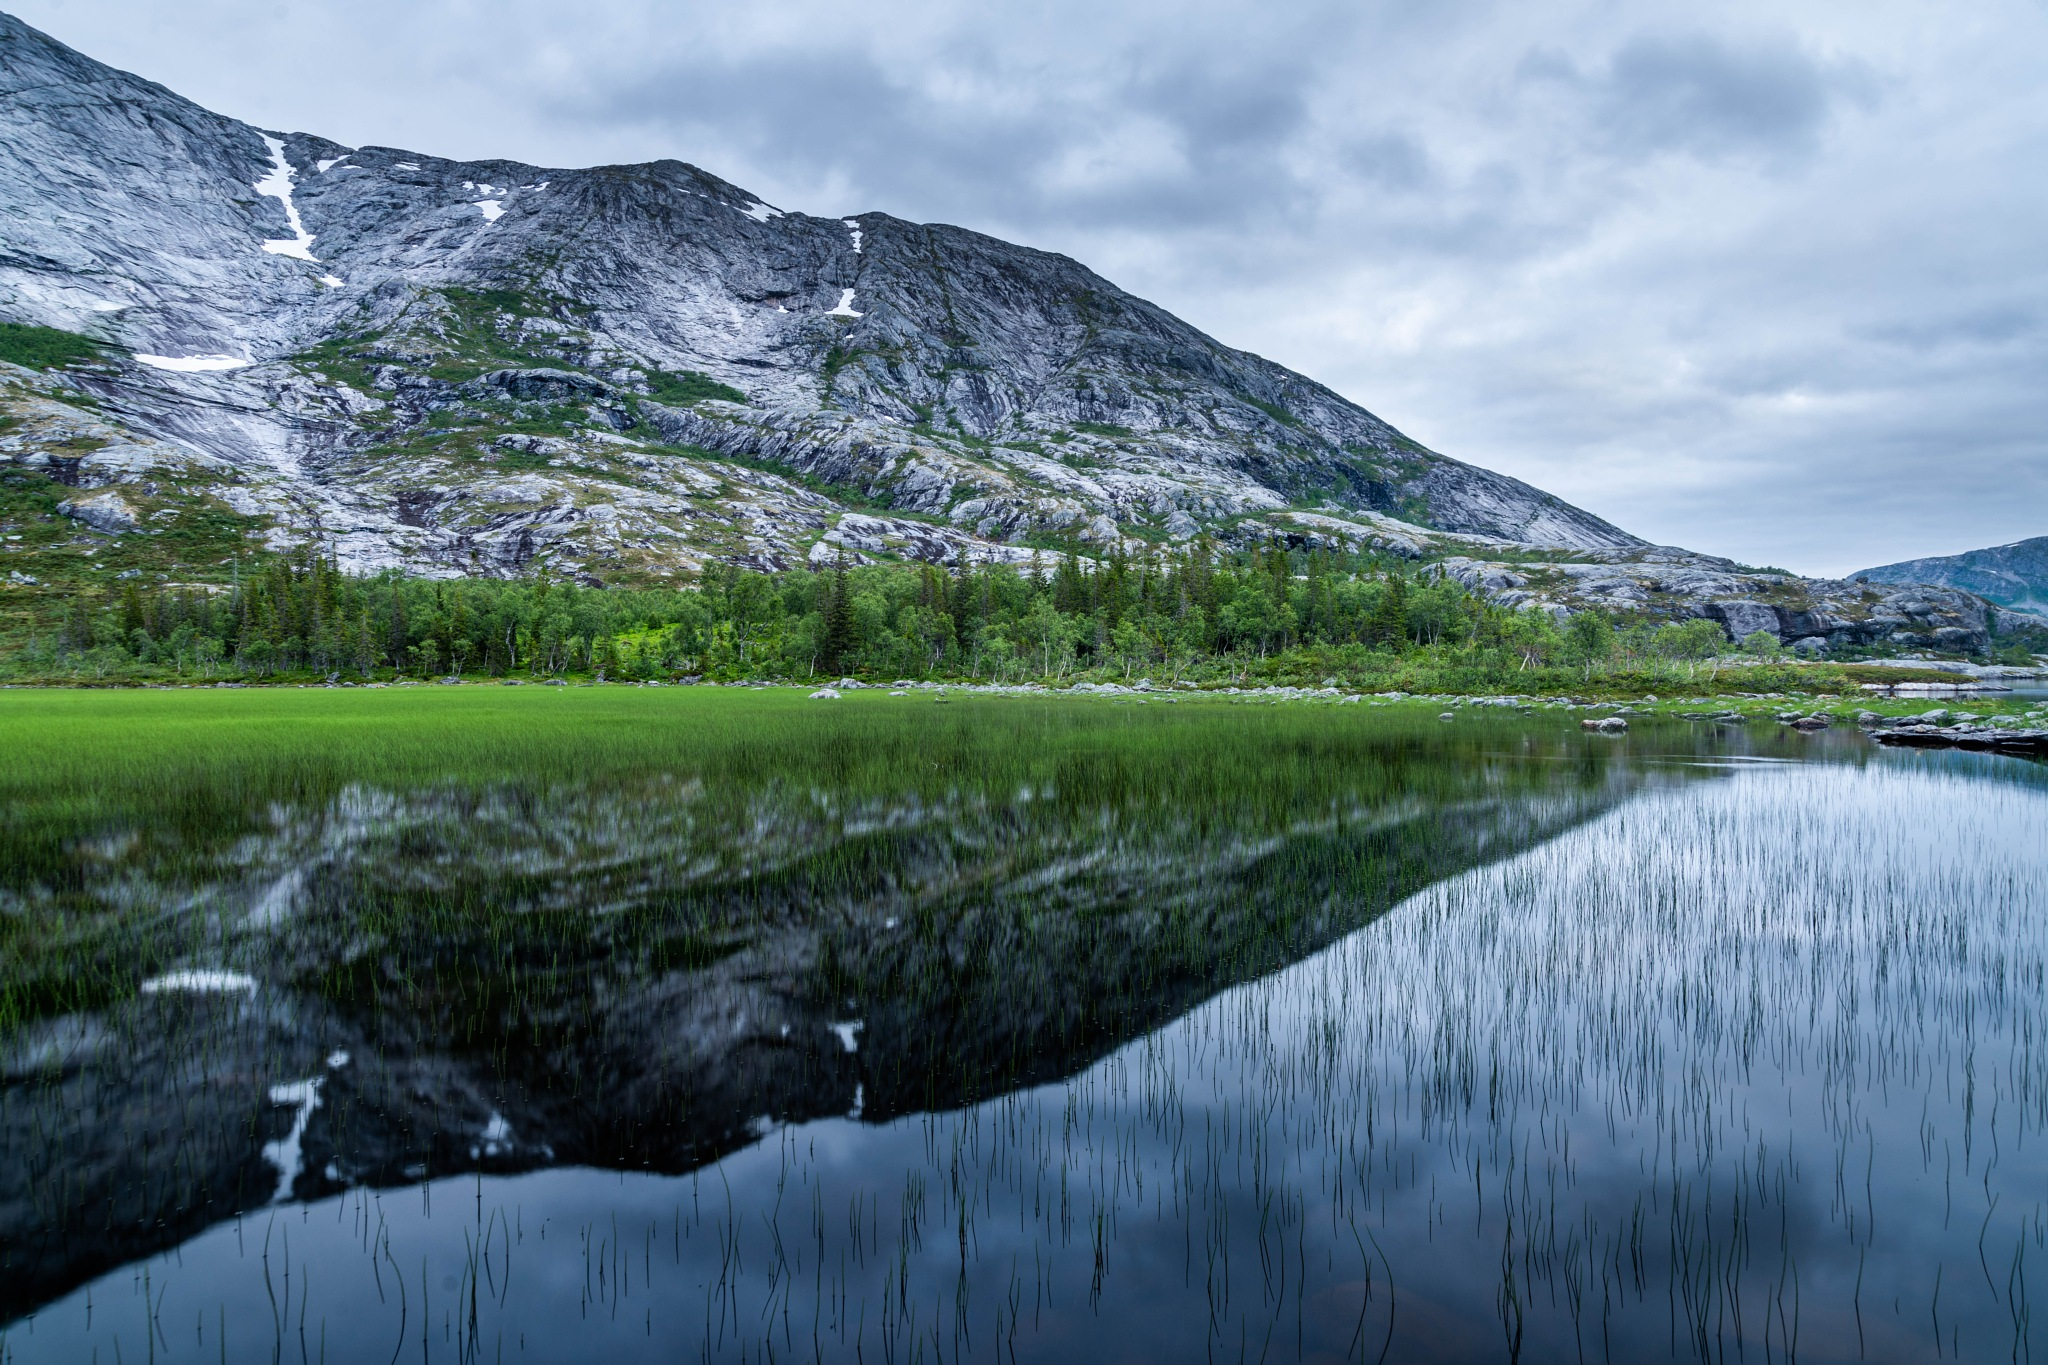 Reflections of some mountains in Helgeland by E Pedersen